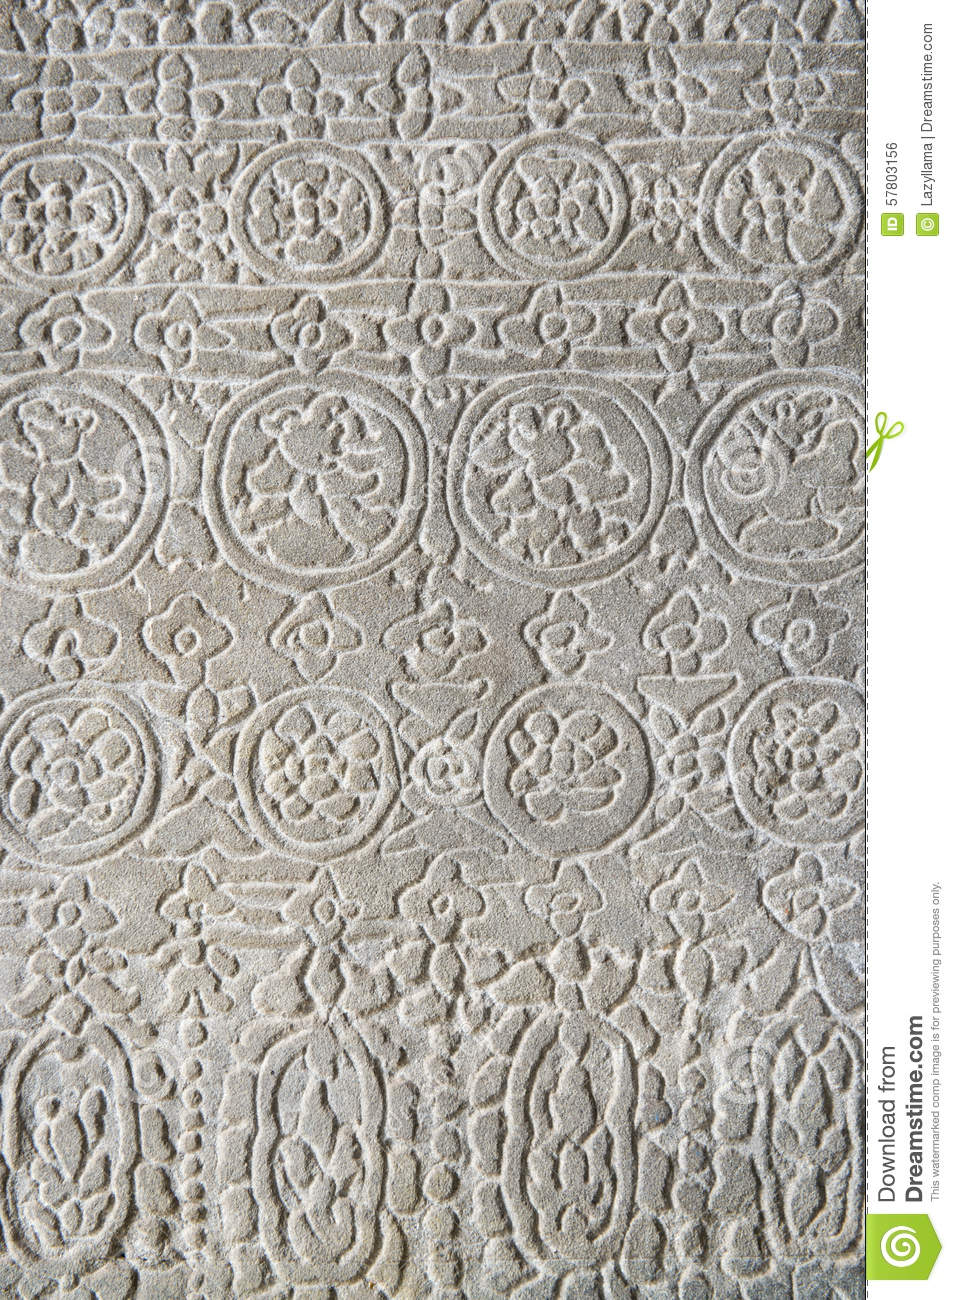 Angkor wat stone carving relief pattern stock photo image of